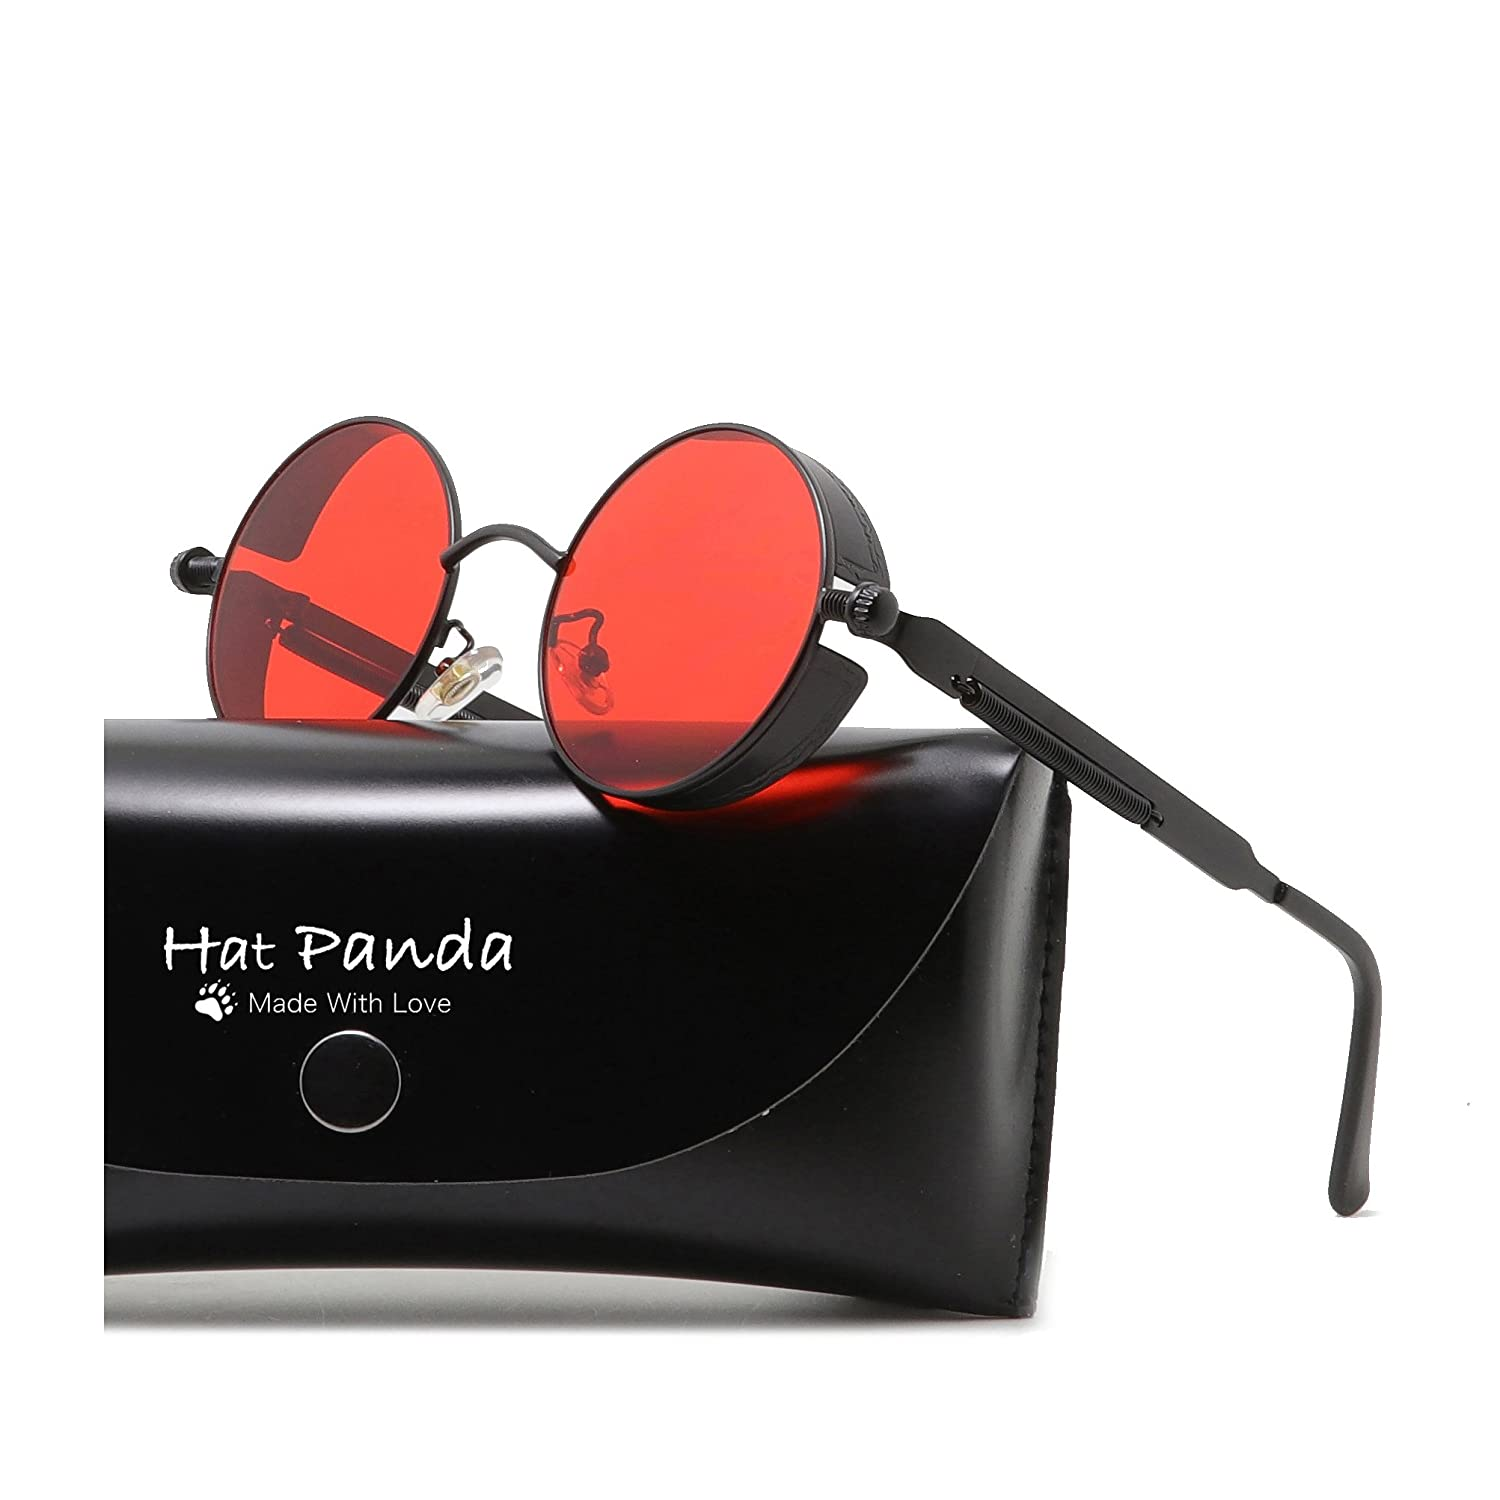 3464de4e95 HatPanda Round Steampunk Sunglasses Retro Sunglasses For Men And Women   Amazon.co.uk  Clothing